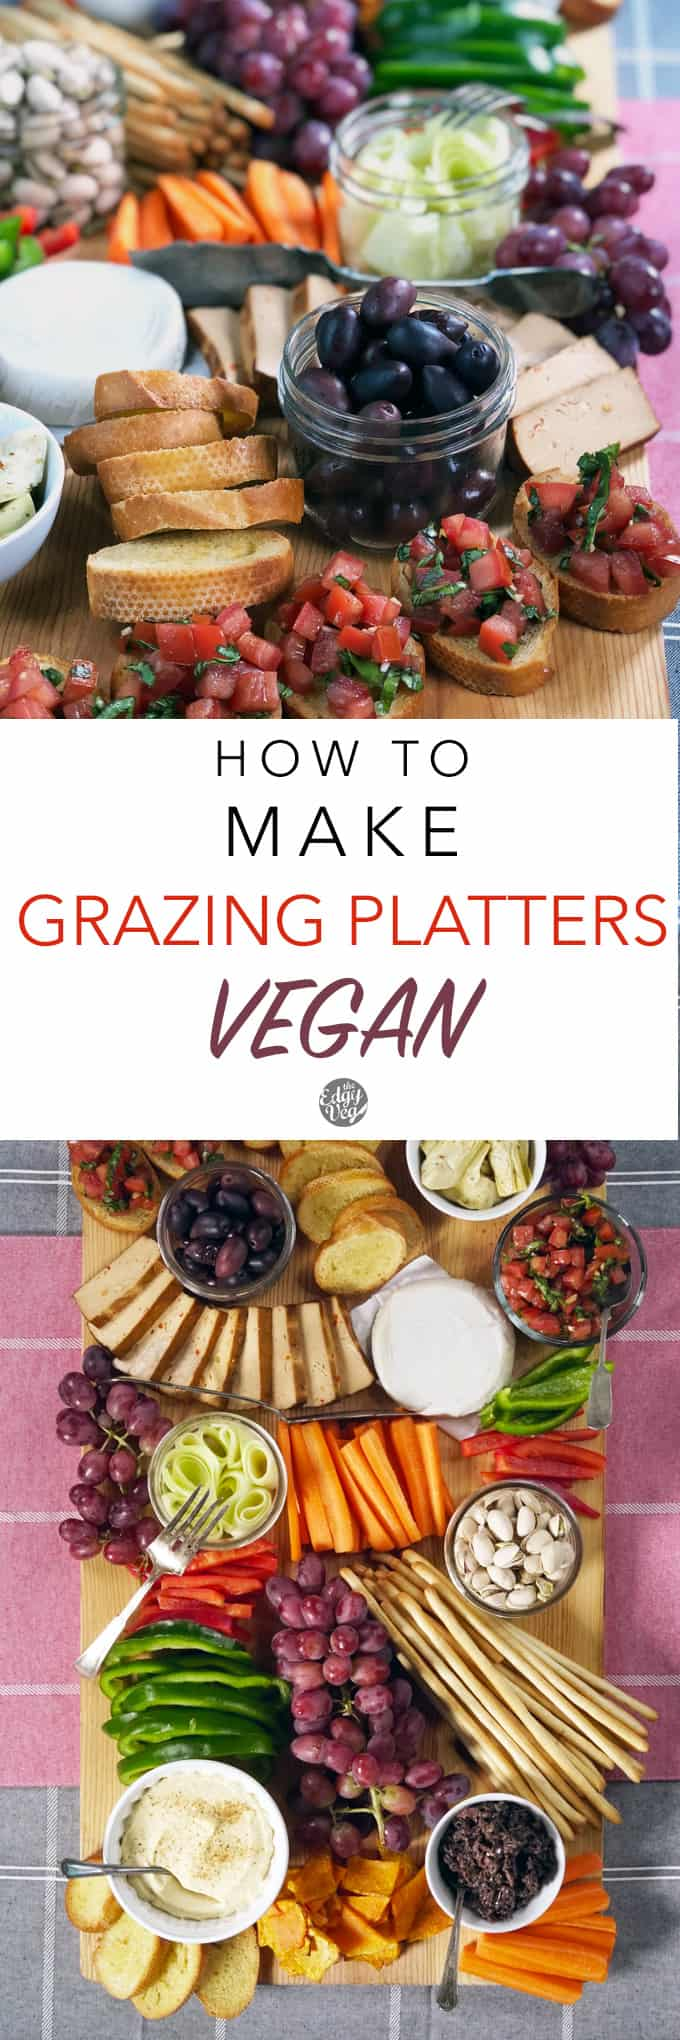 Vegan Grazing Table How To Make A Vegan Grazing Platter The Edgy Veg